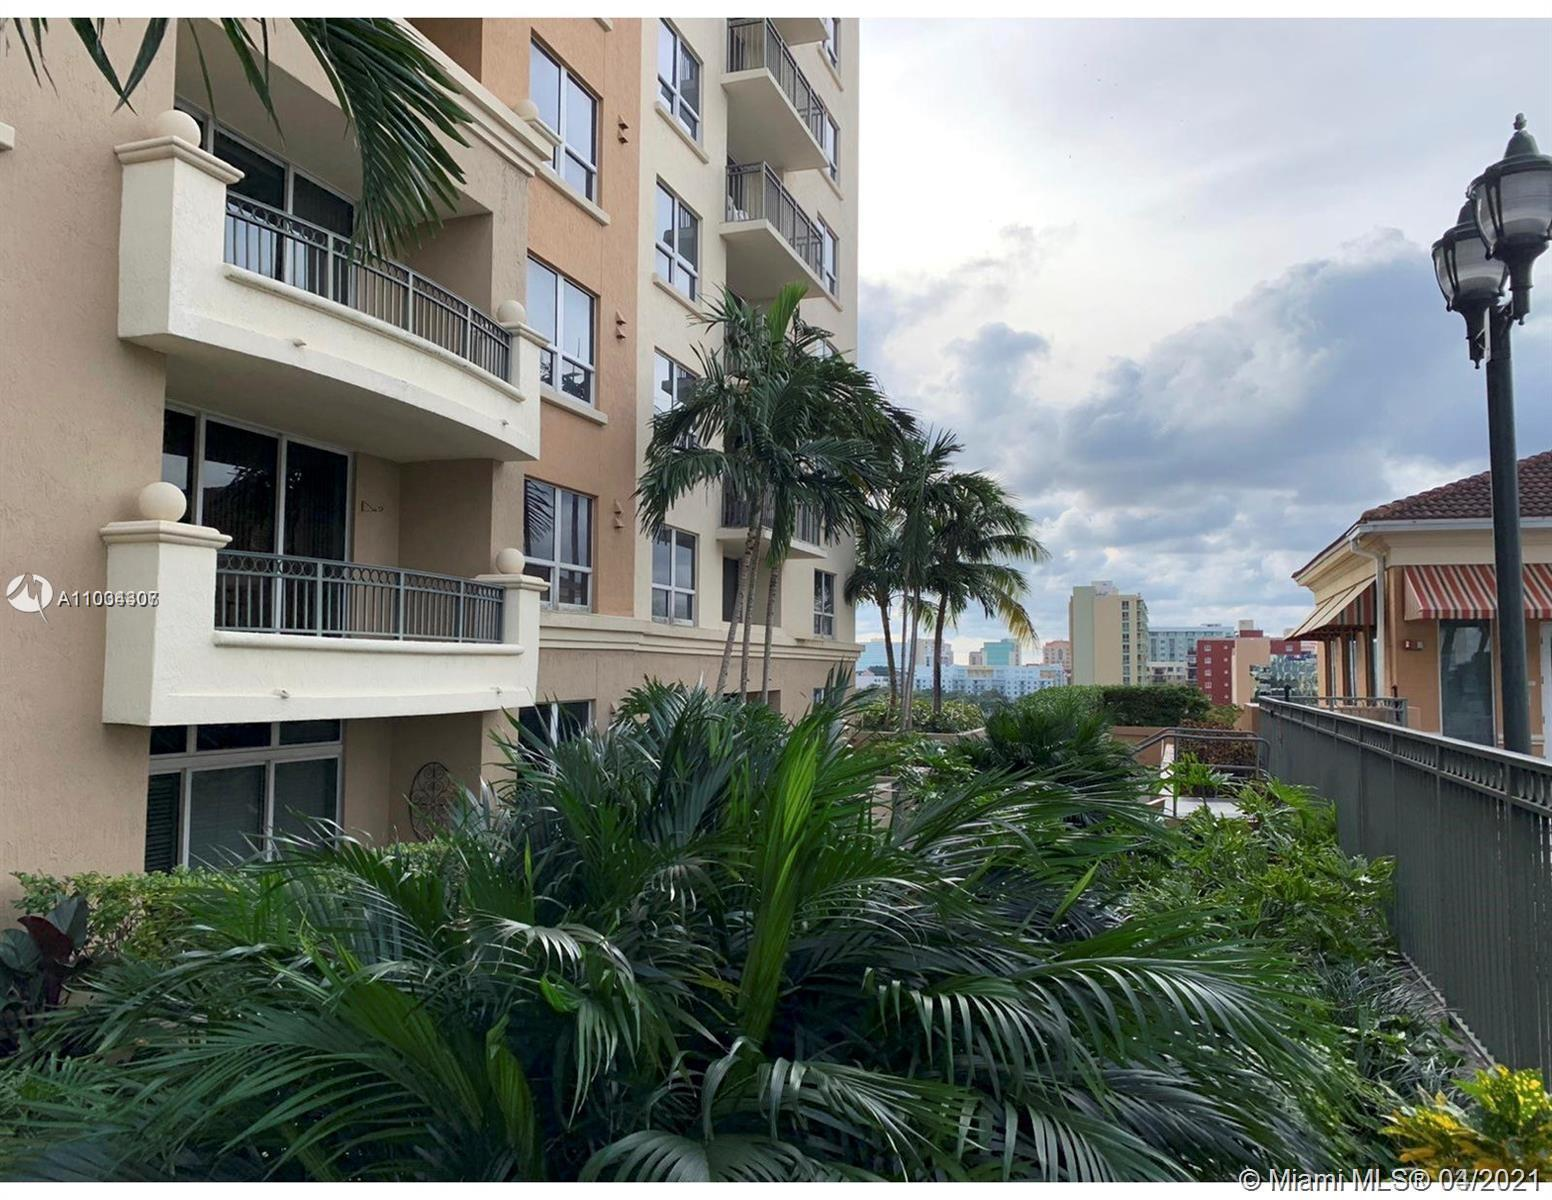 Amazing corner unit with City and pool views. 2/2 & 1 cover/secure assigned parking. Updated with n